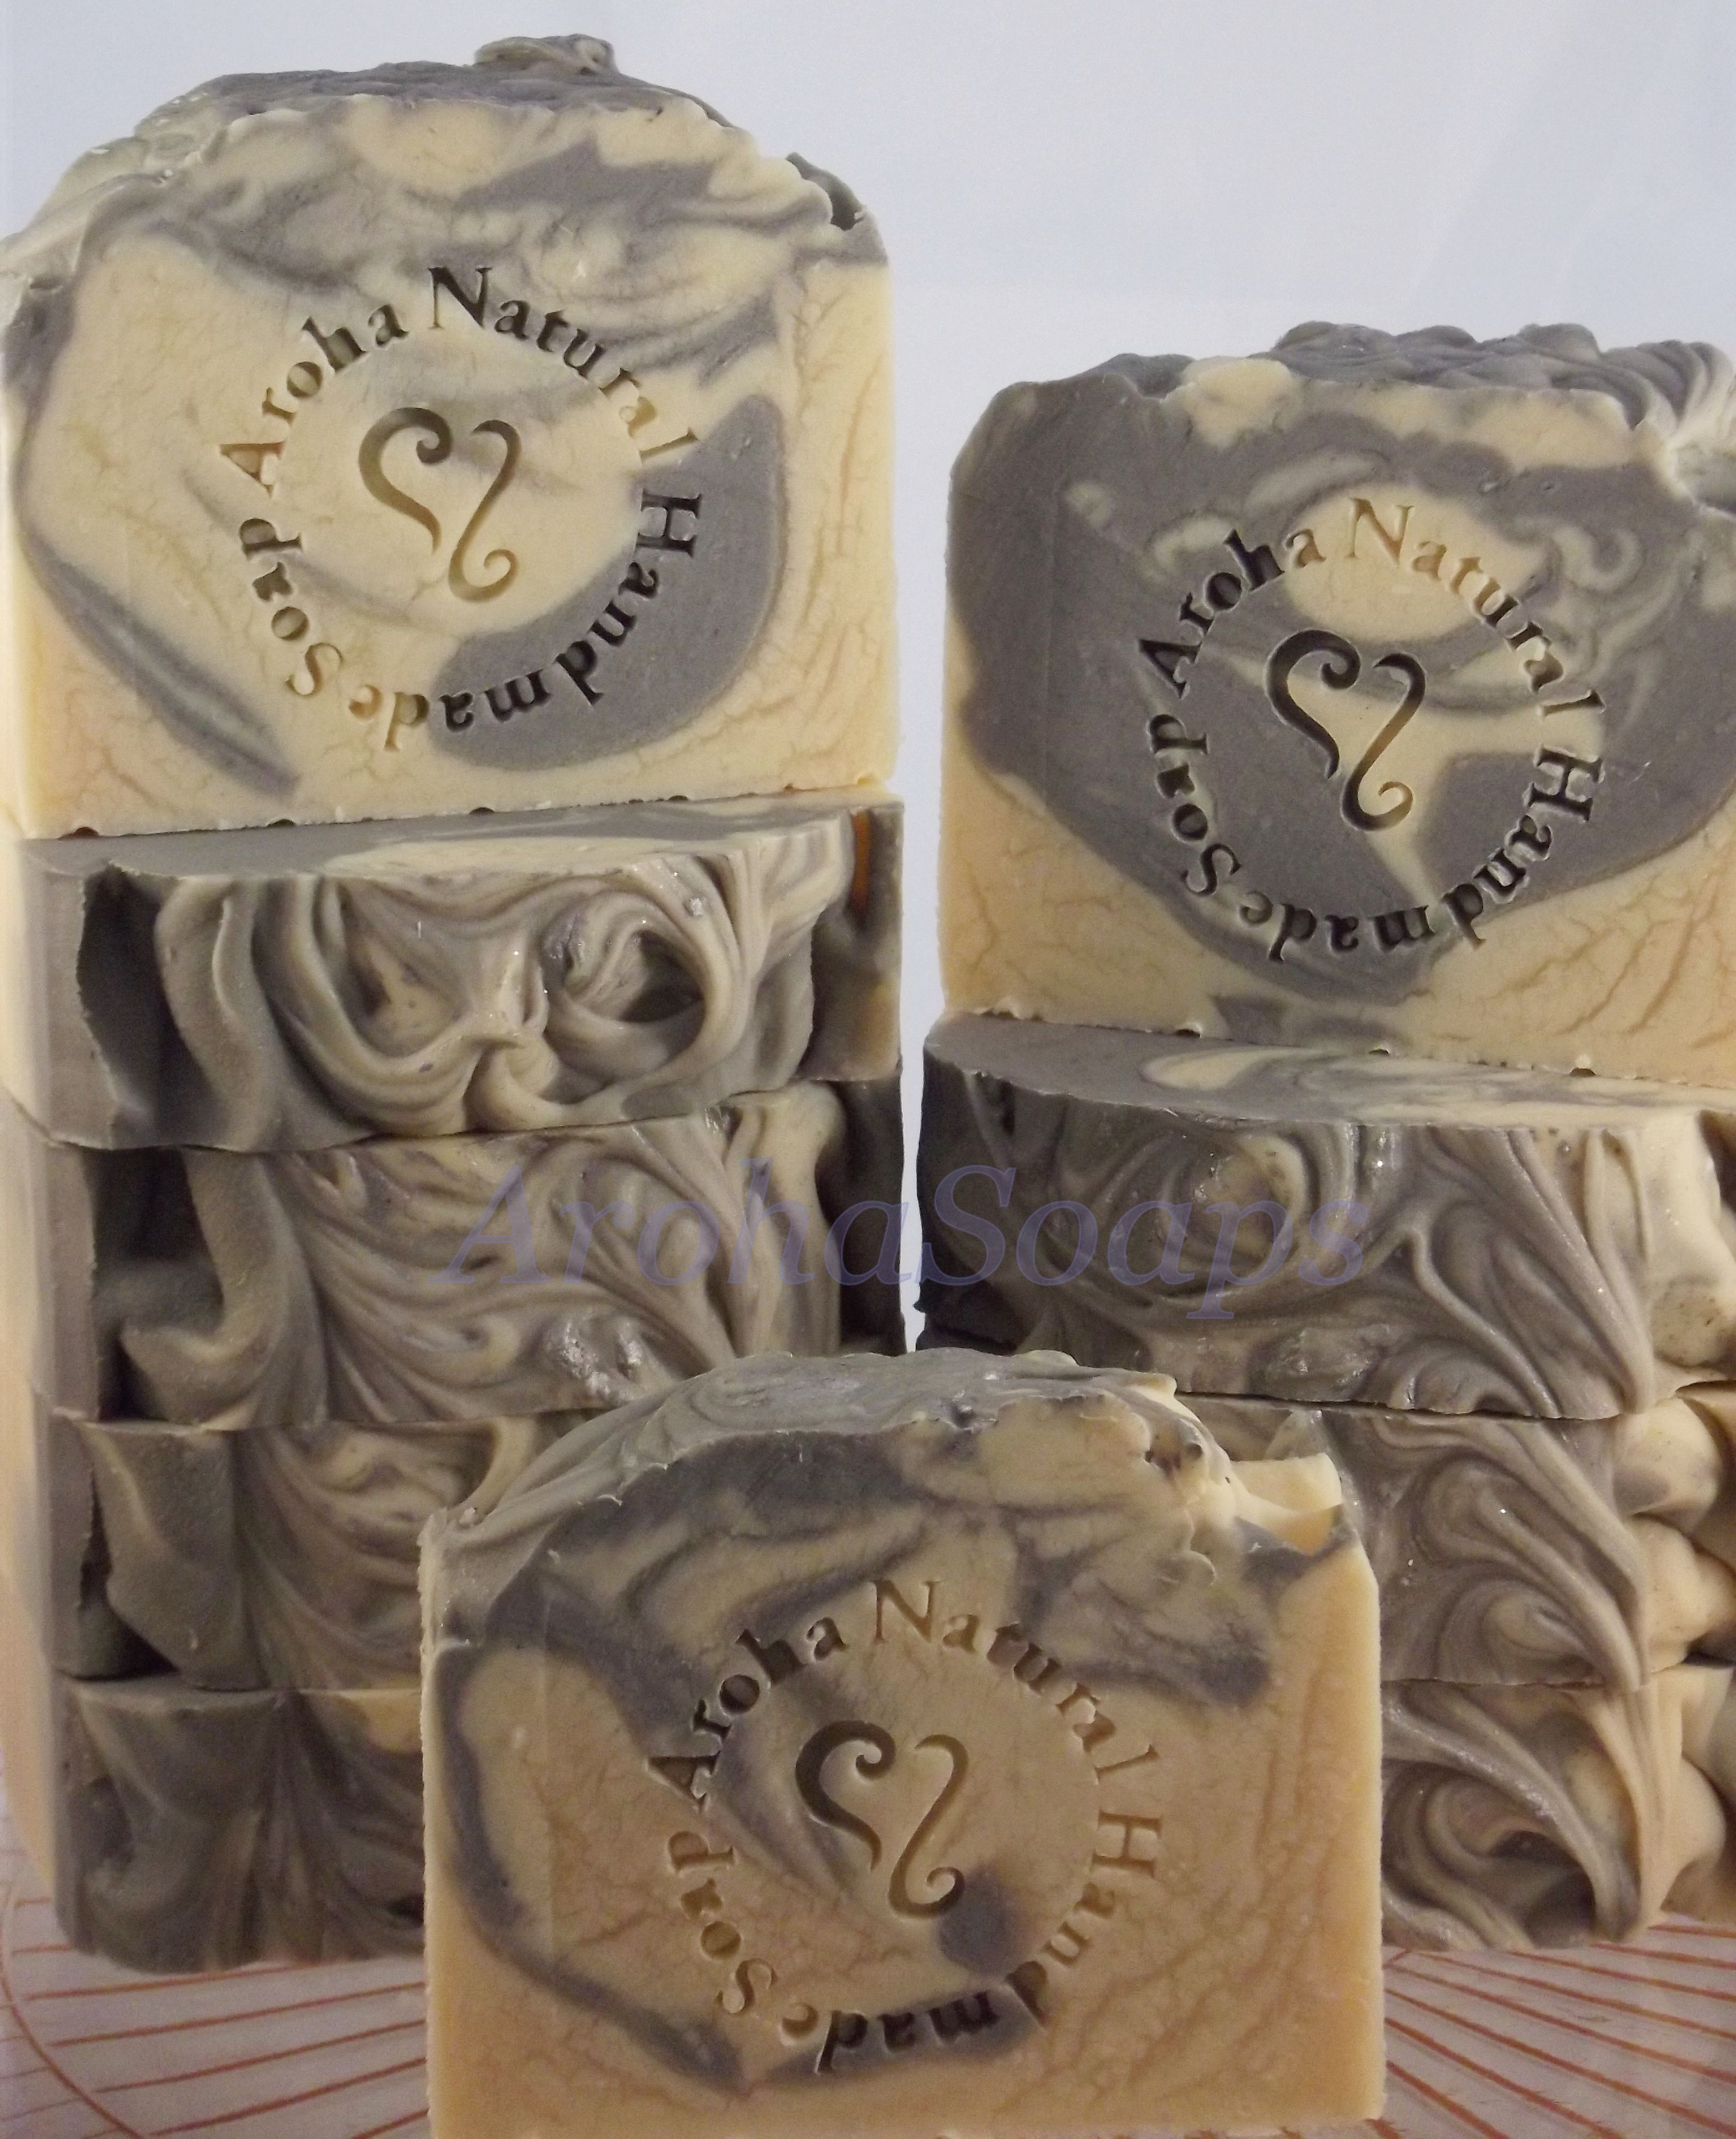 Chanel Just like 5.made by Aroha Soaps NZ Soap